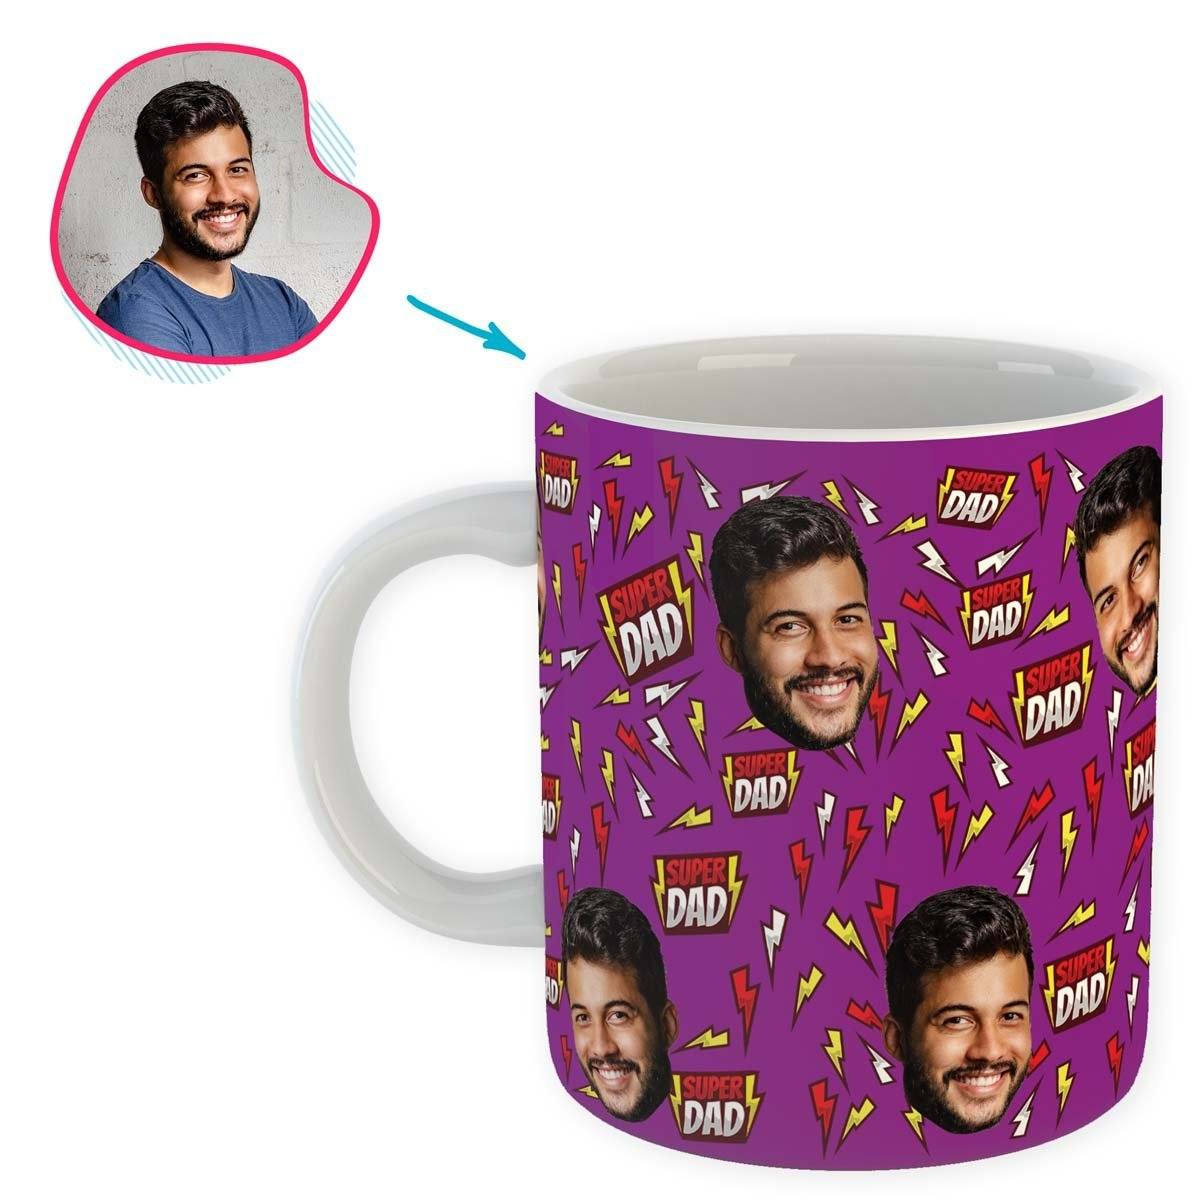 purple Super Dad mug personalized with photo of face printed on it